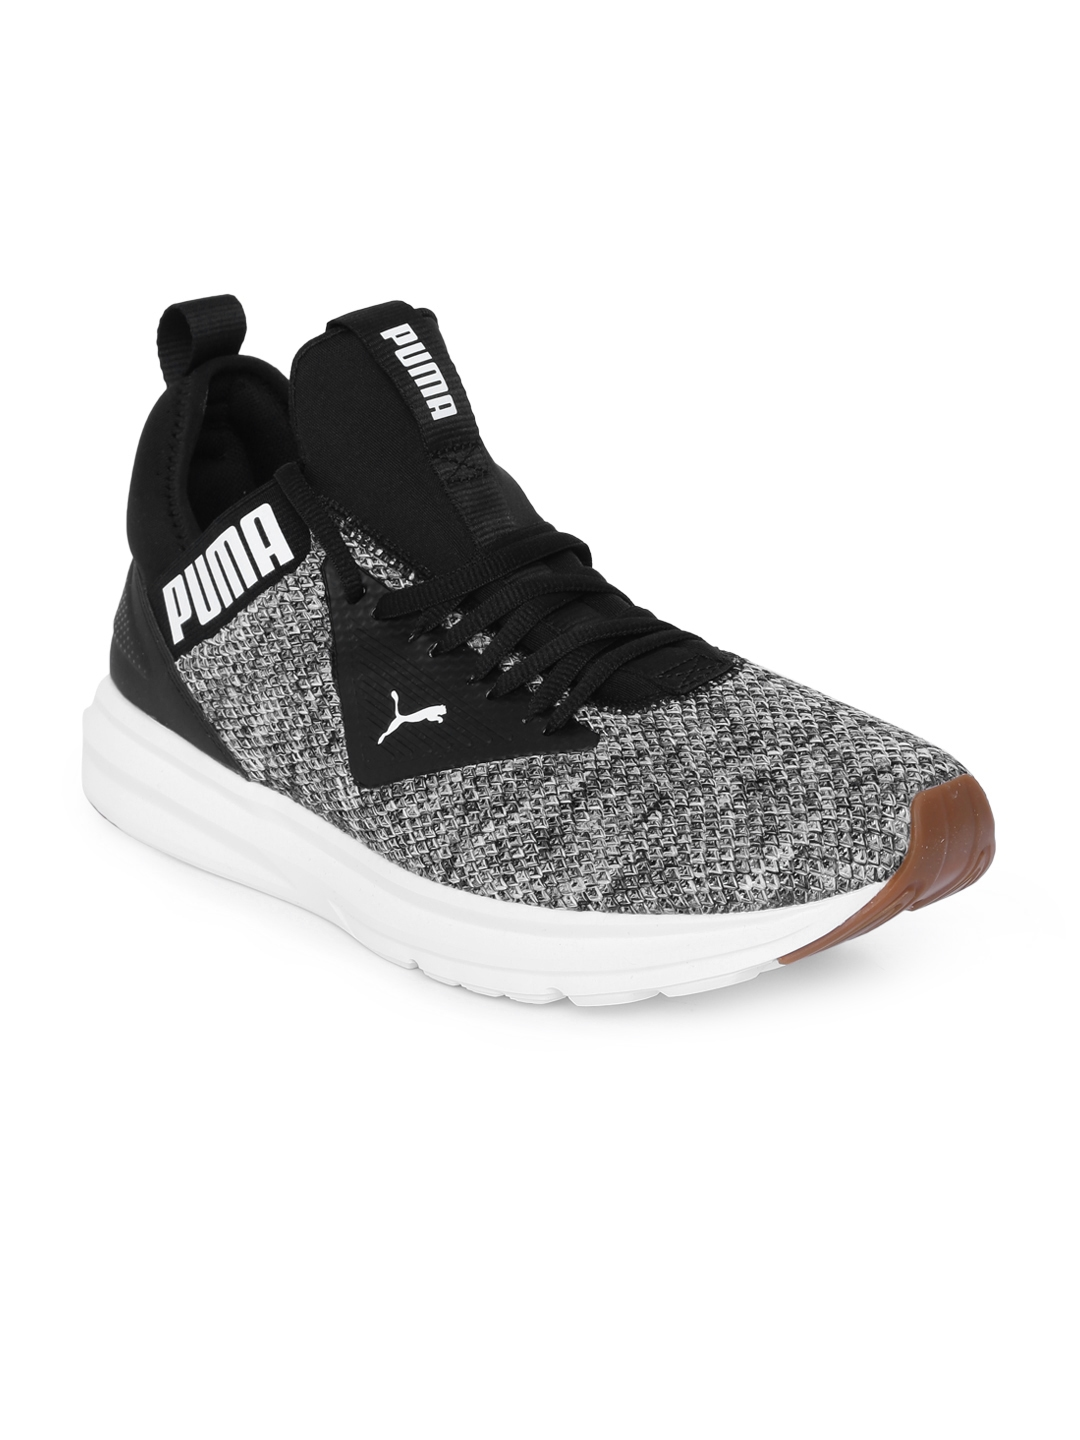 Buy Puma Men Black Enzo Beta Woven Running Shoes - Sports Shoes for ... c959ce3f3